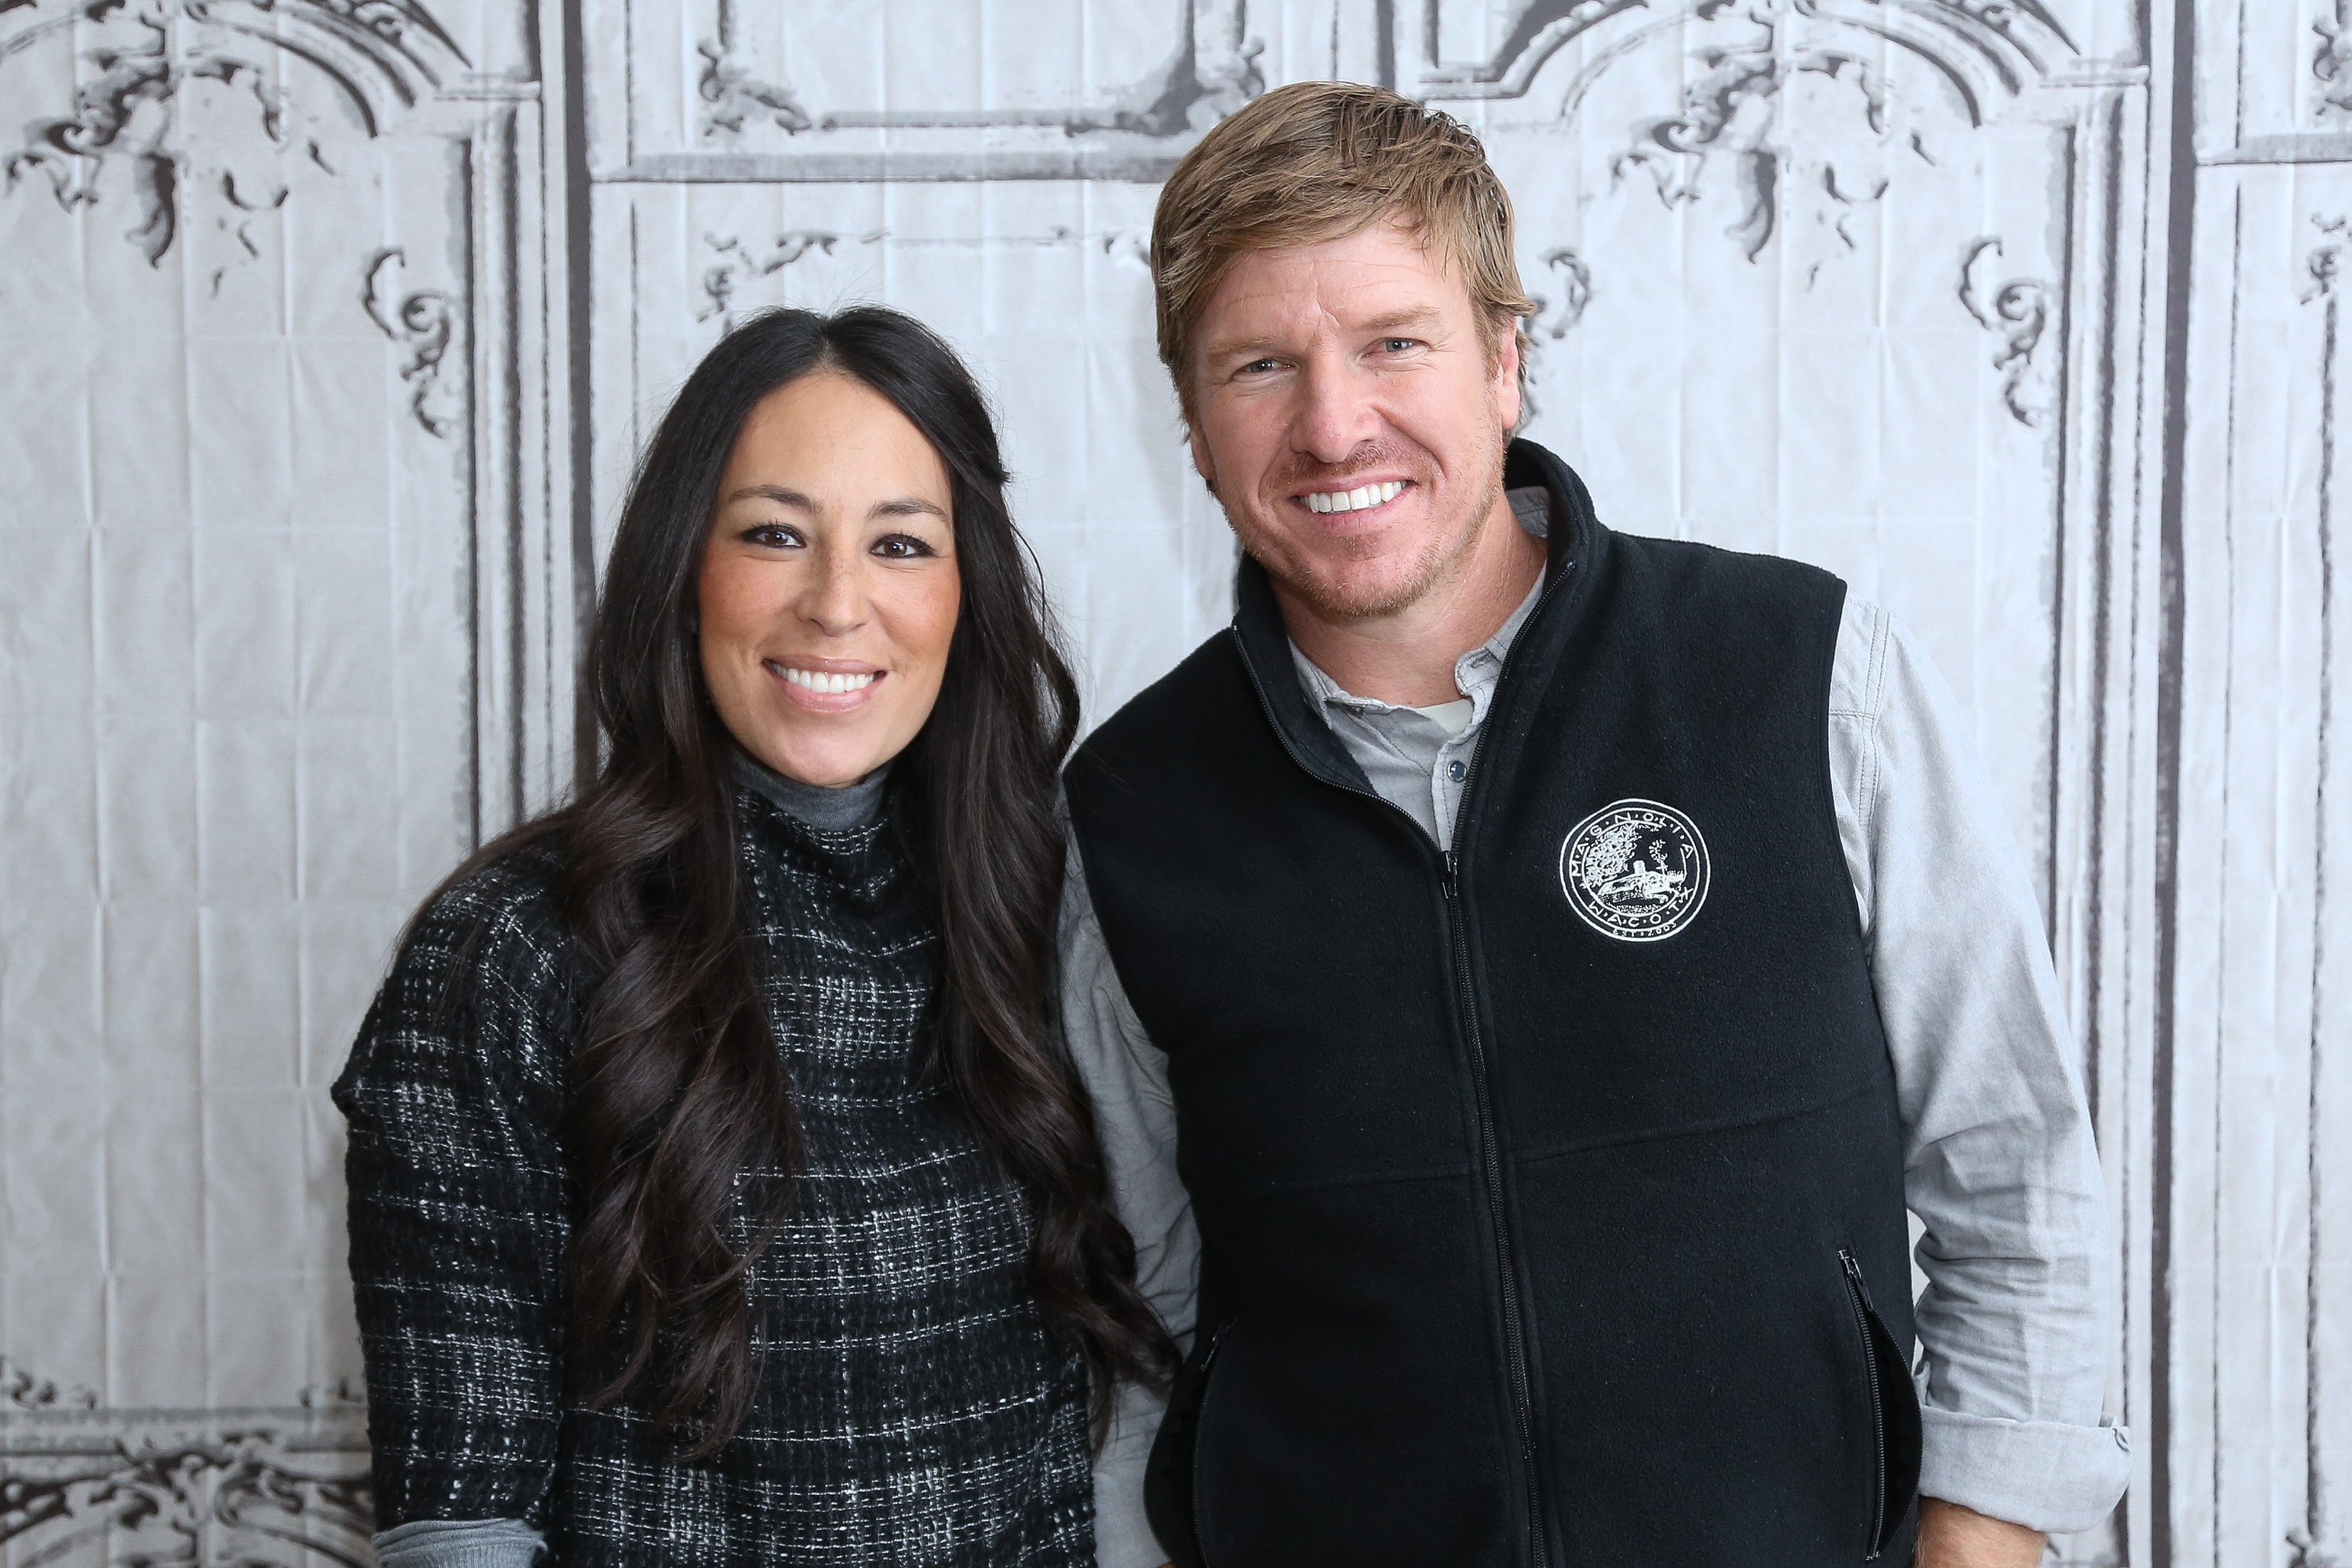 """Chip Gaines and Joanna Gaines at AOL Build Presents: """"Fixer Upper"""" at AOL Studios In New York on December 8, 2015.   Source:Getty Images"""